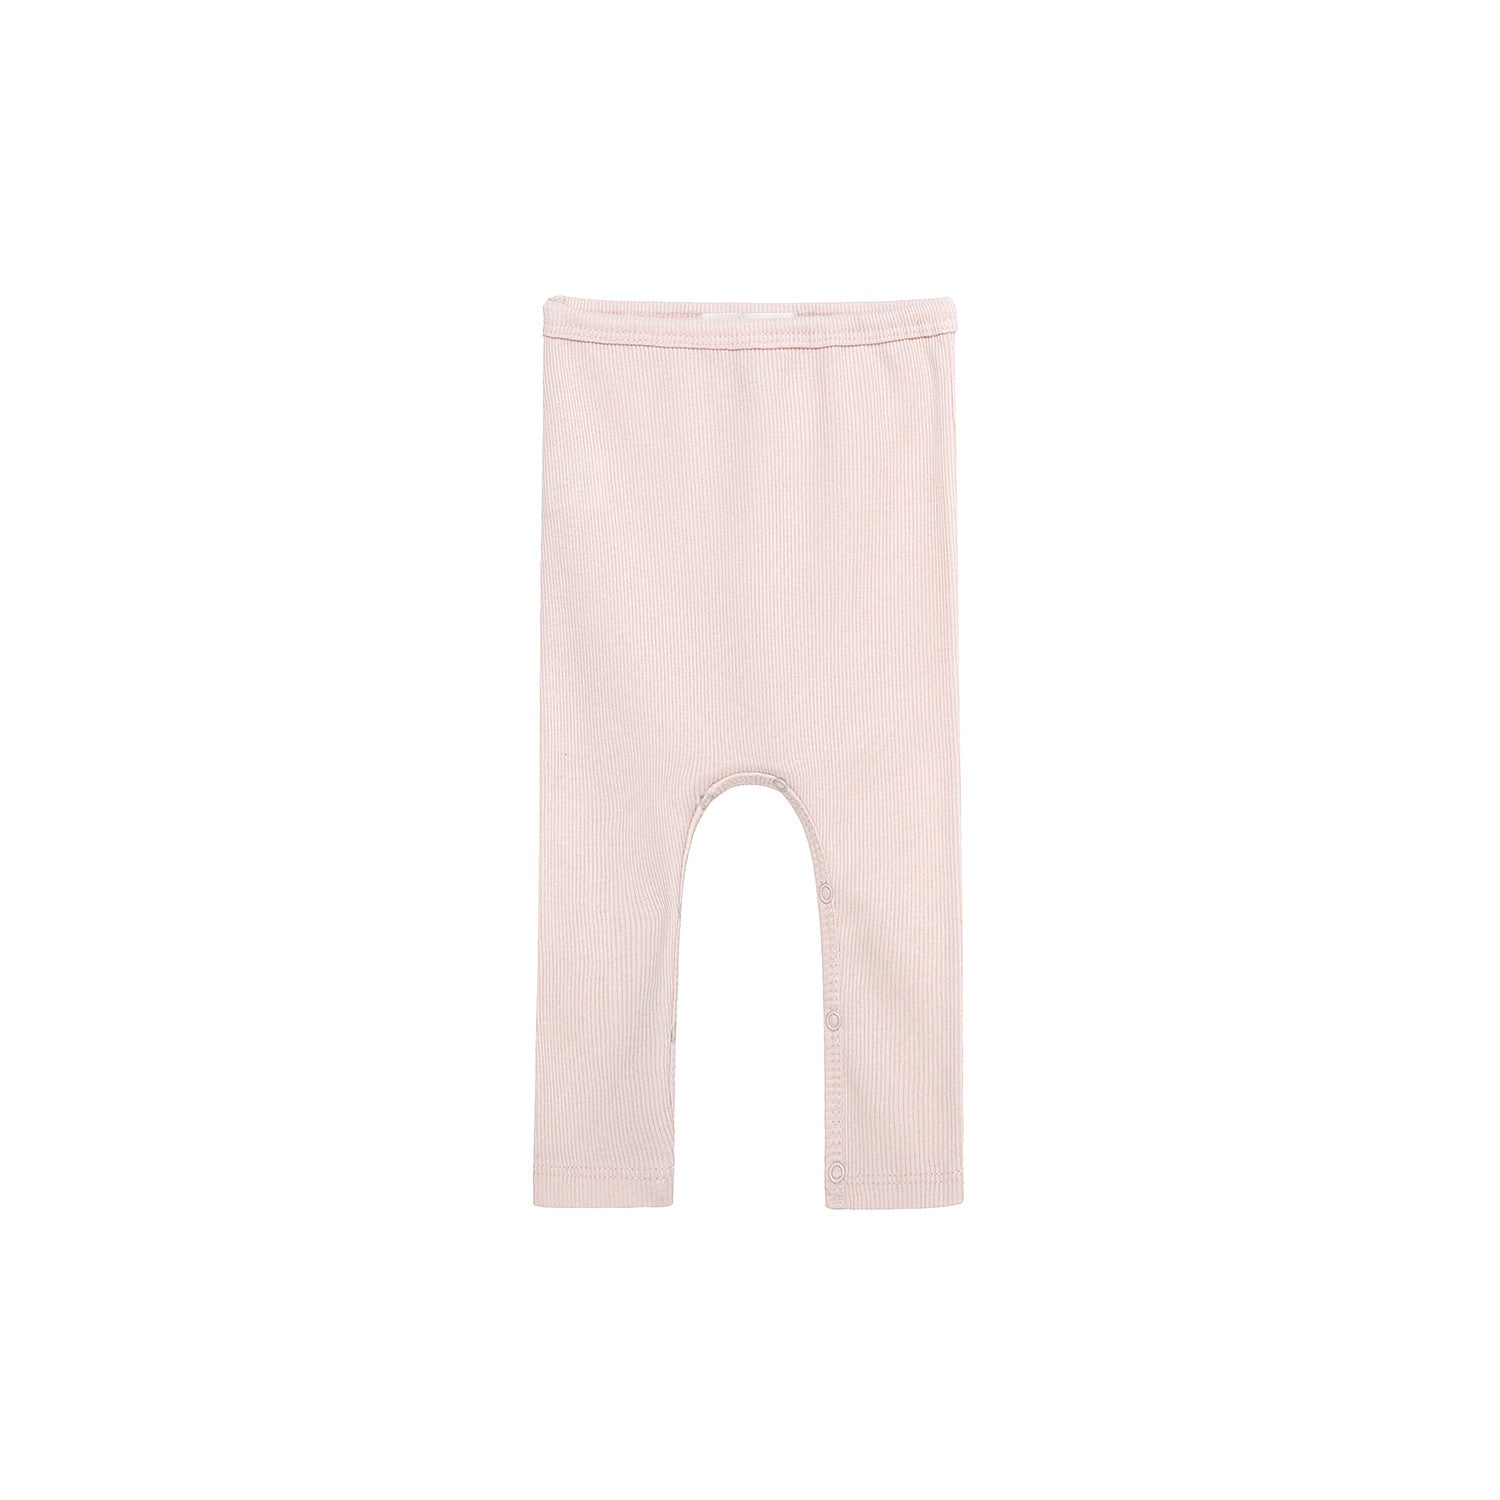 Bene Bene Pink Ribbed Twin Set - Ladida